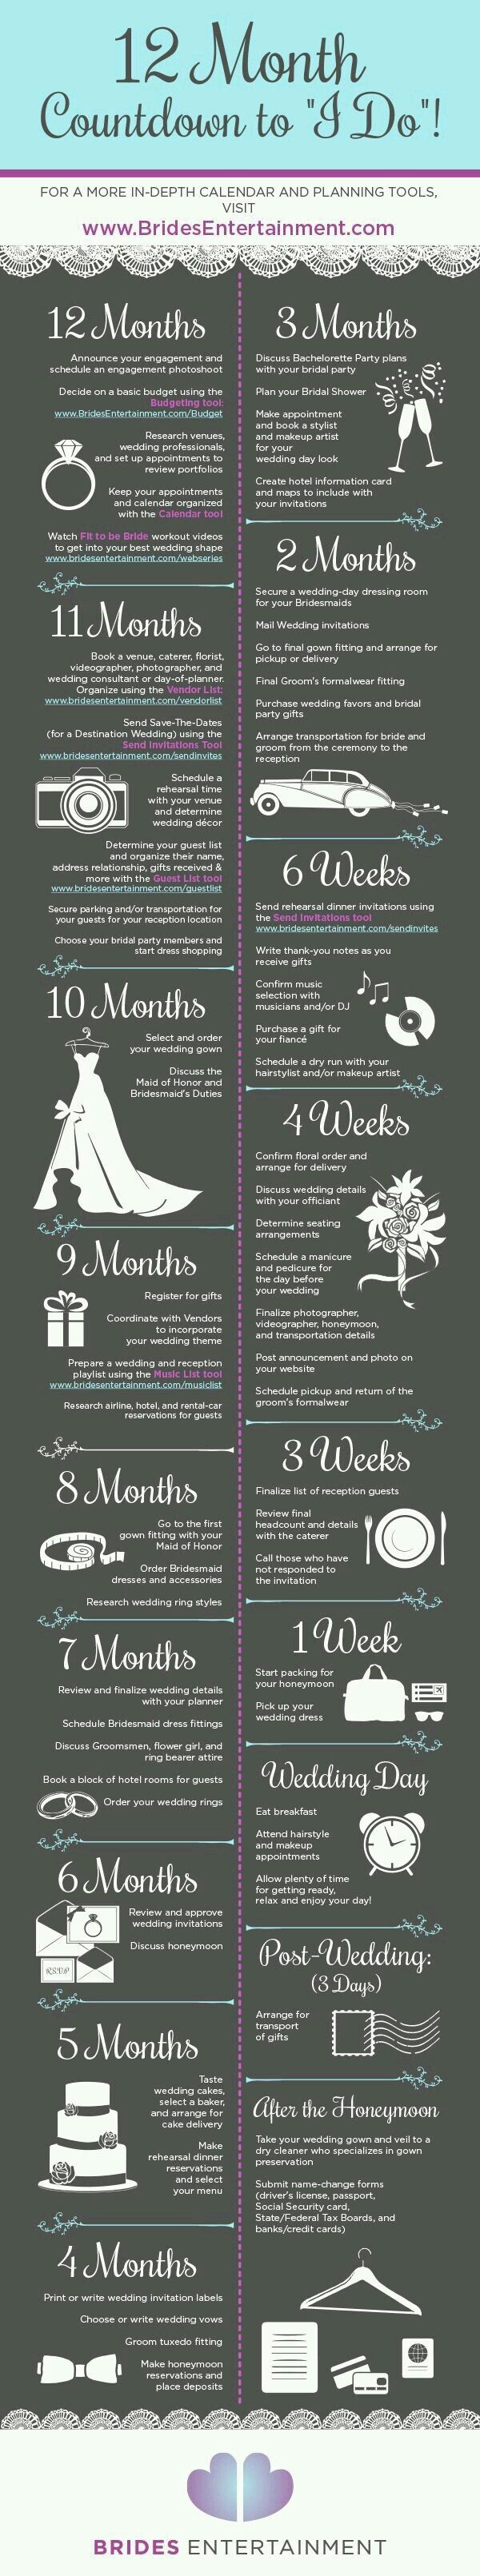 10 Useful Wedding Planning Infographics to Give